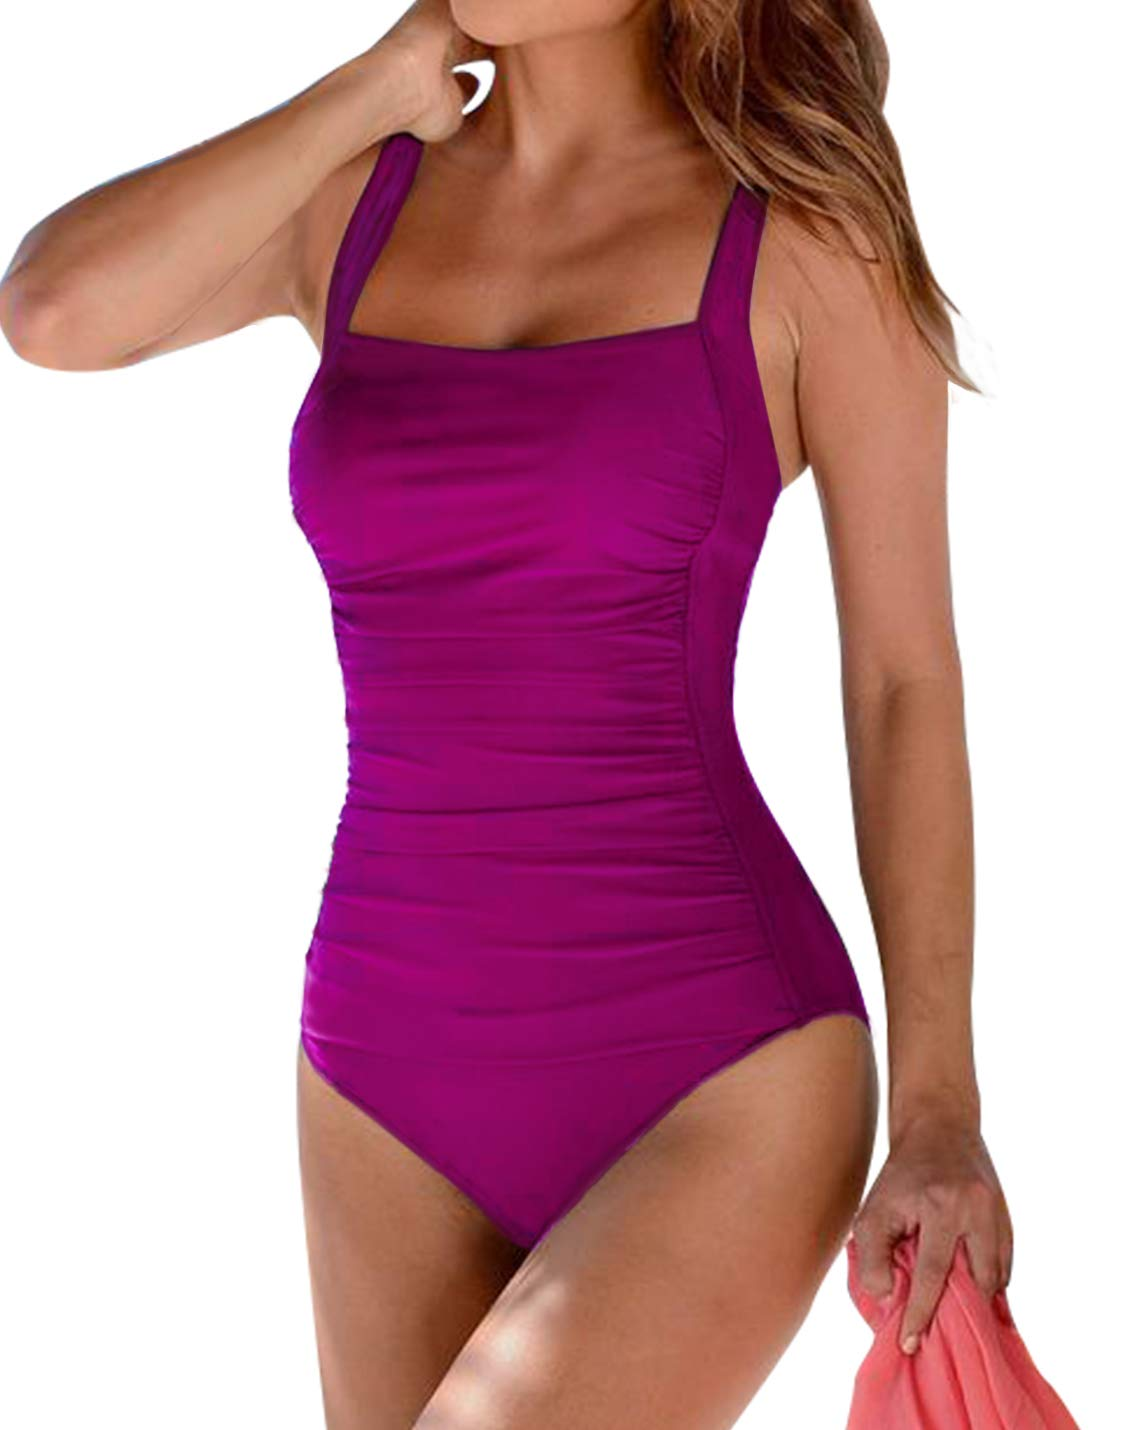 Upopby Women's Vintage Padded Push up One Piece Swimsuits Tummy Control Bathing Suits Plus Size Swimwear Rose 6